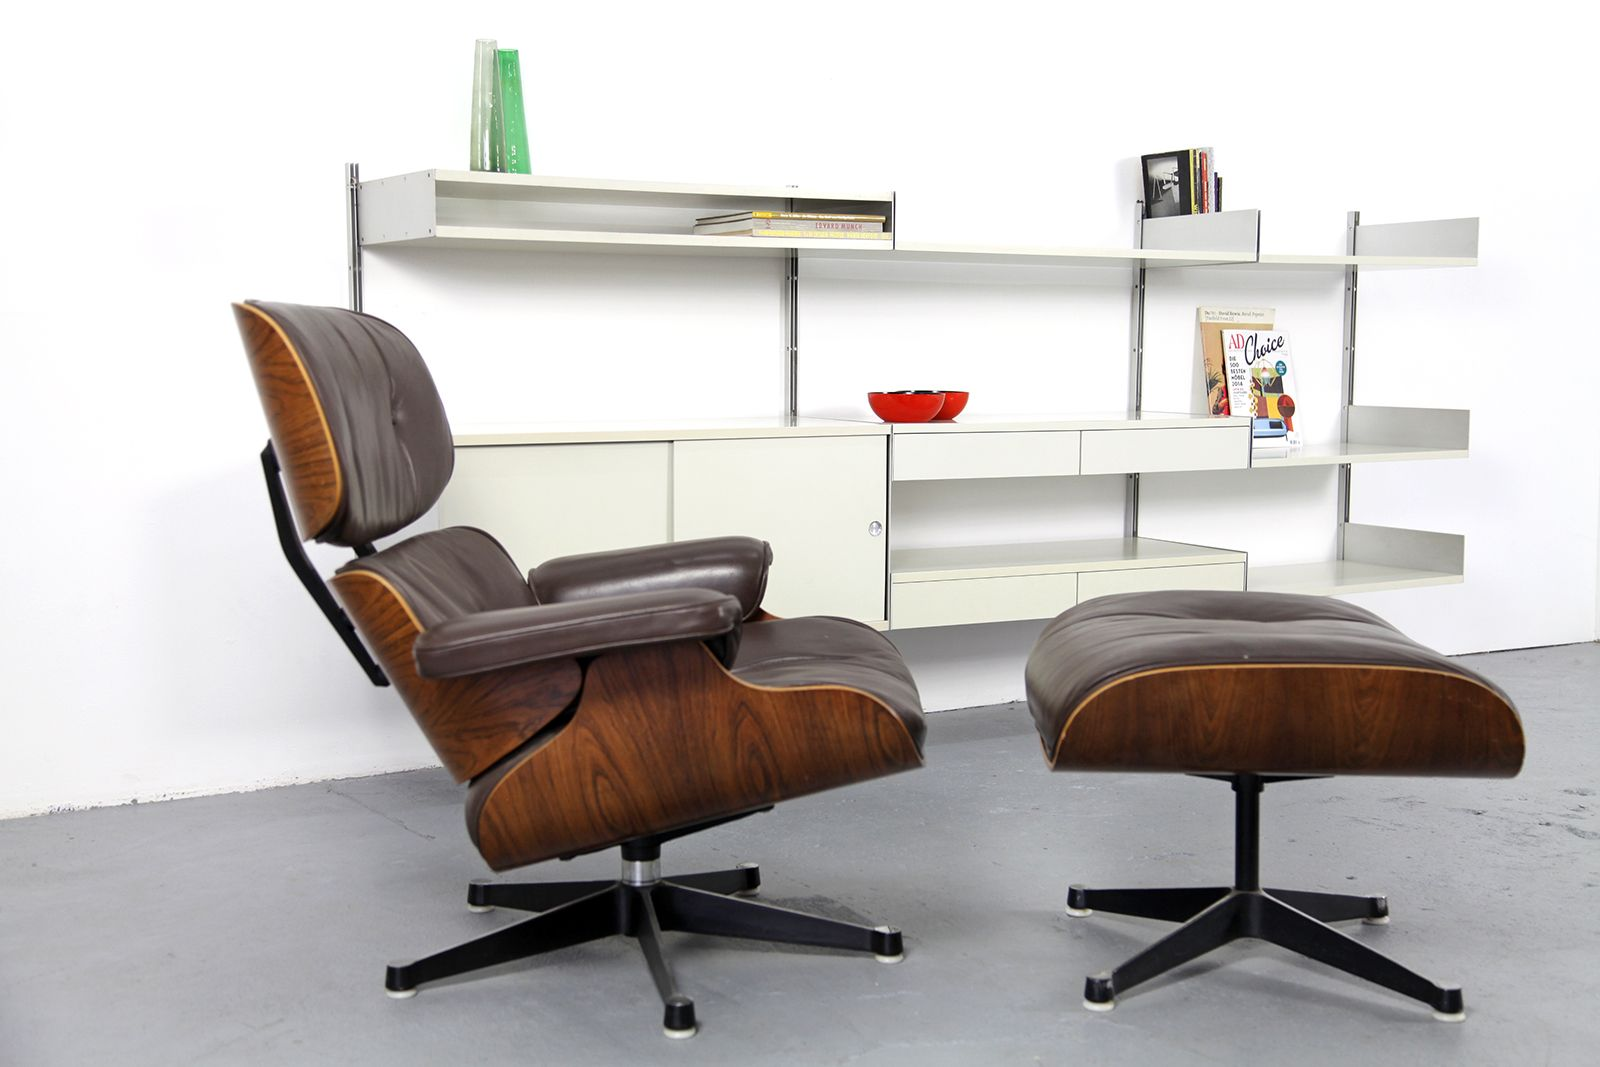 regalsystem mod 606 von dieter rams f r vits 1960 bei pamono kaufen. Black Bedroom Furniture Sets. Home Design Ideas